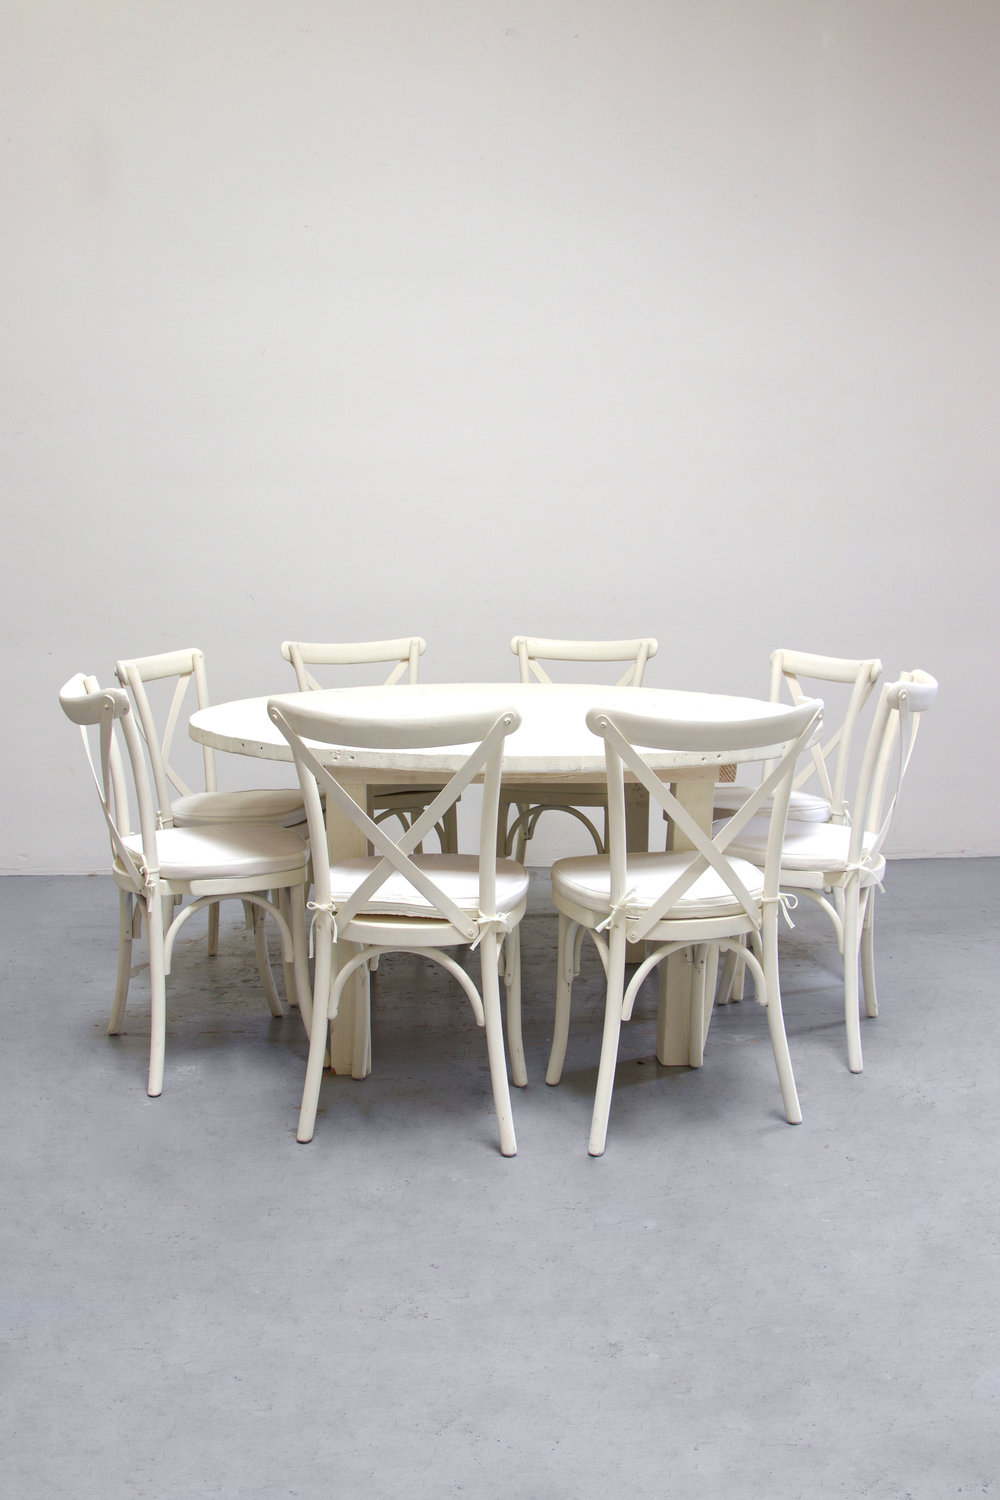 $145 1 Round Vintage White Farm Table w/ 8 Cross-Back Chairs